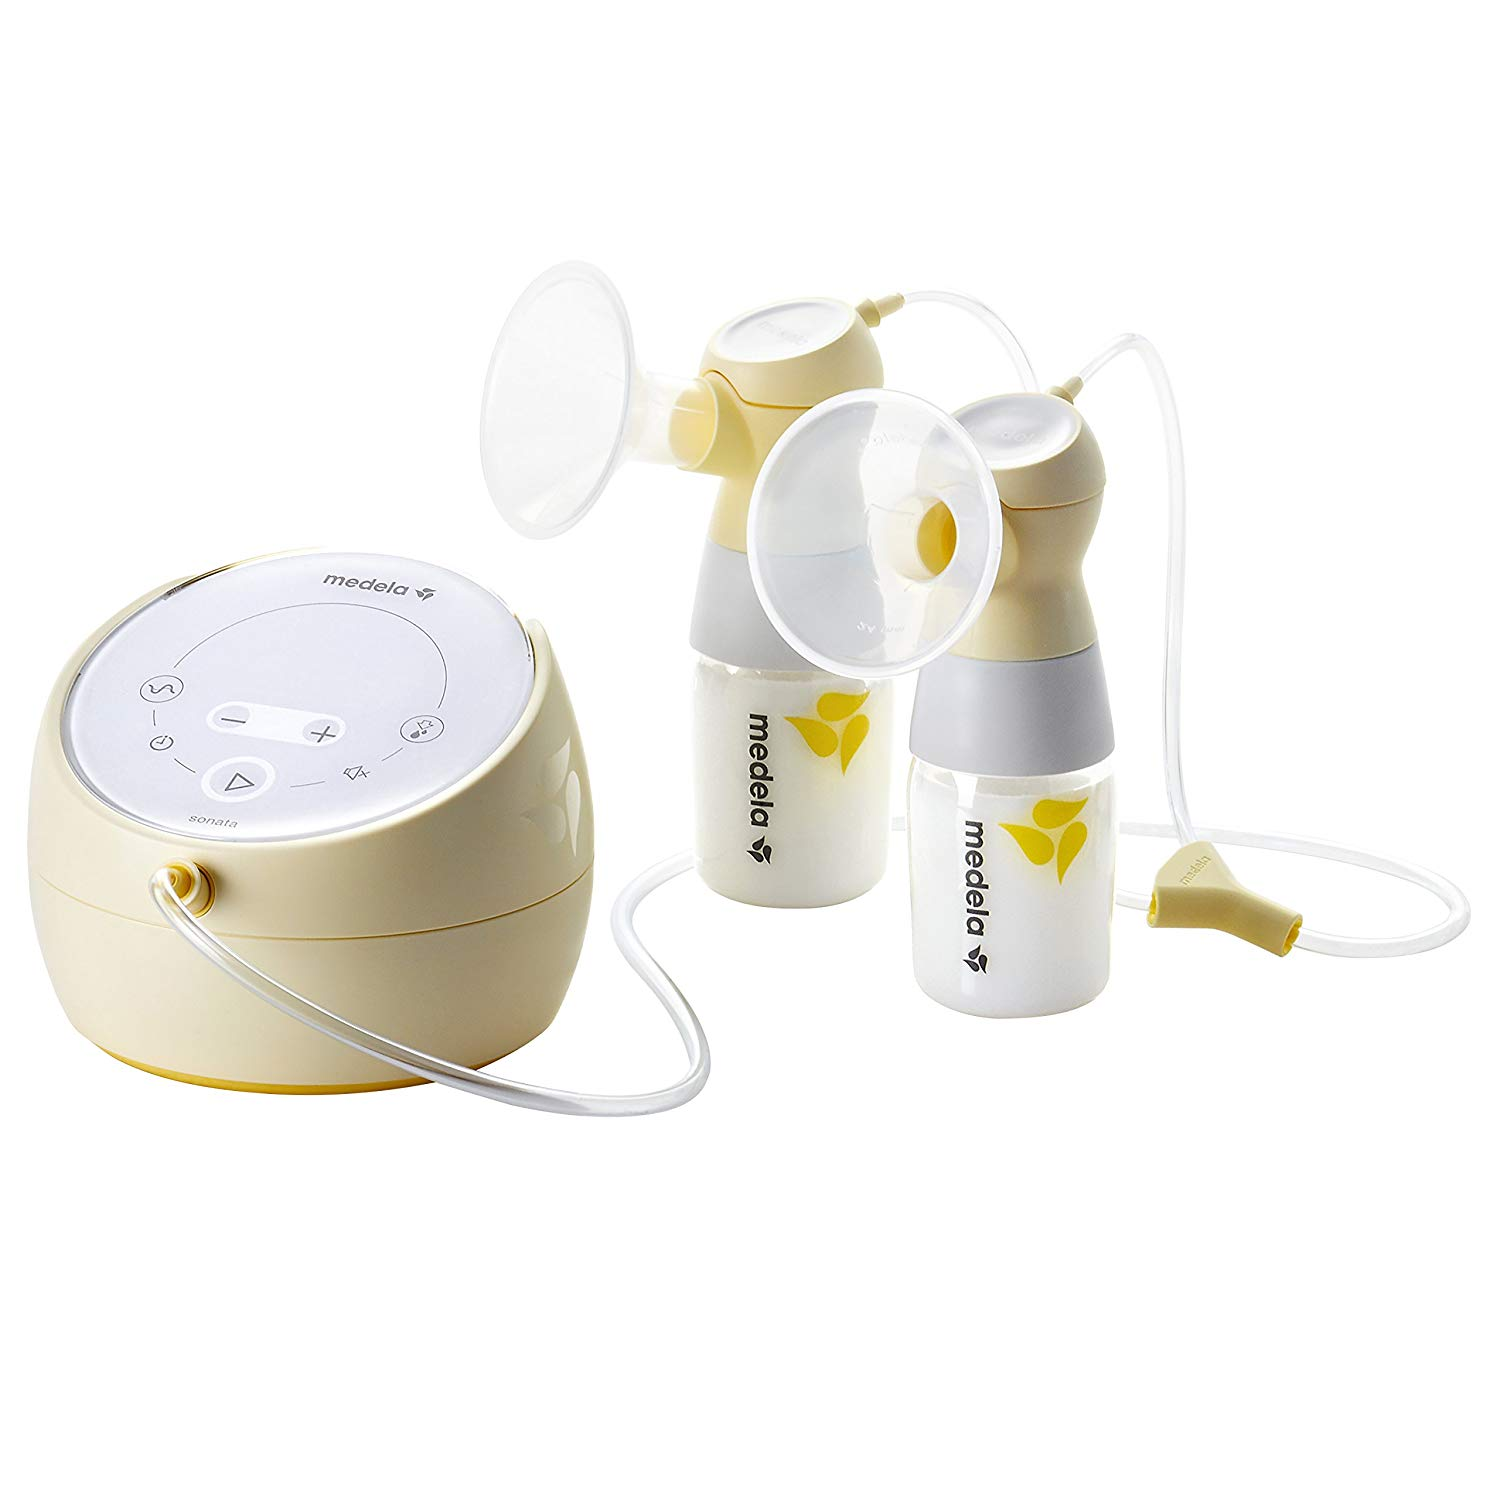 Medela Harmony Breast Pump Manual Breast Pump Portable Pump 2